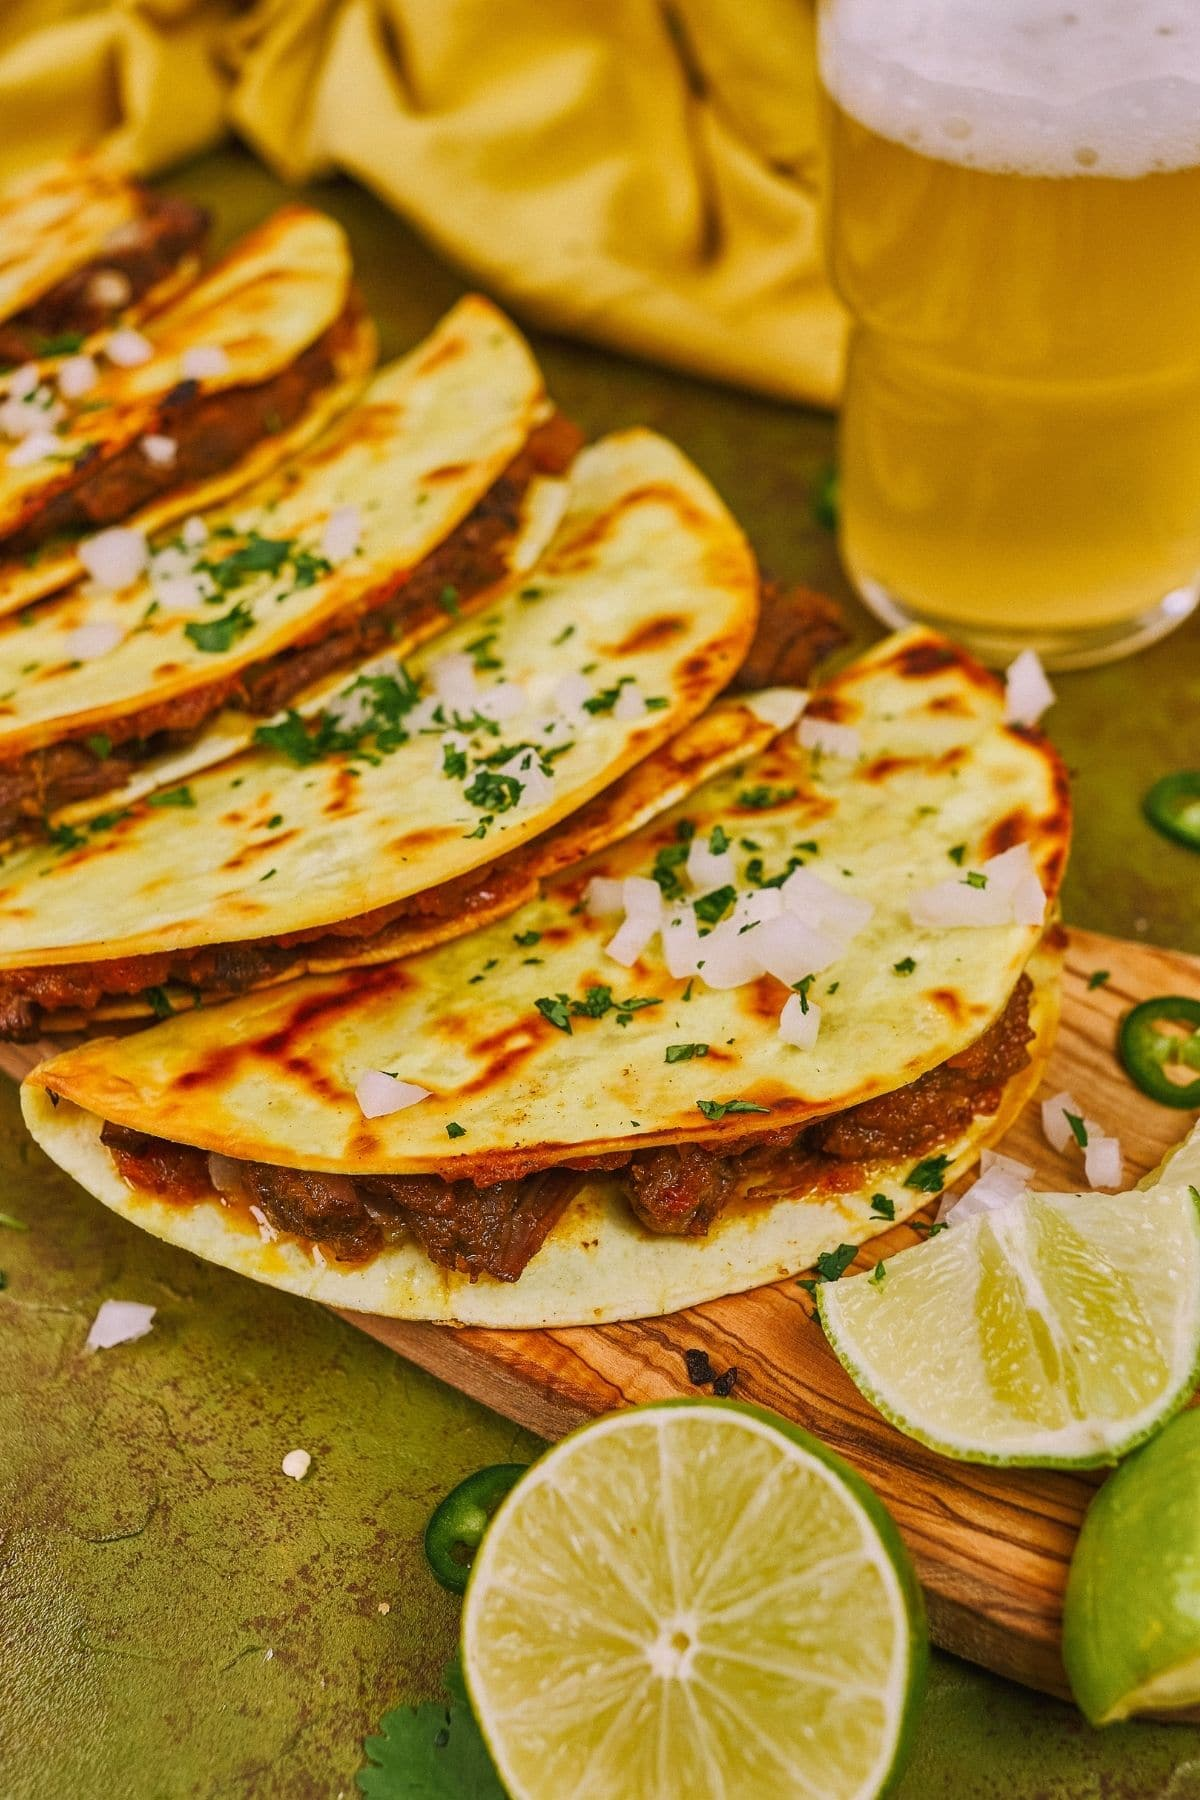 Tacos lined up on wooden board next to mug of beer